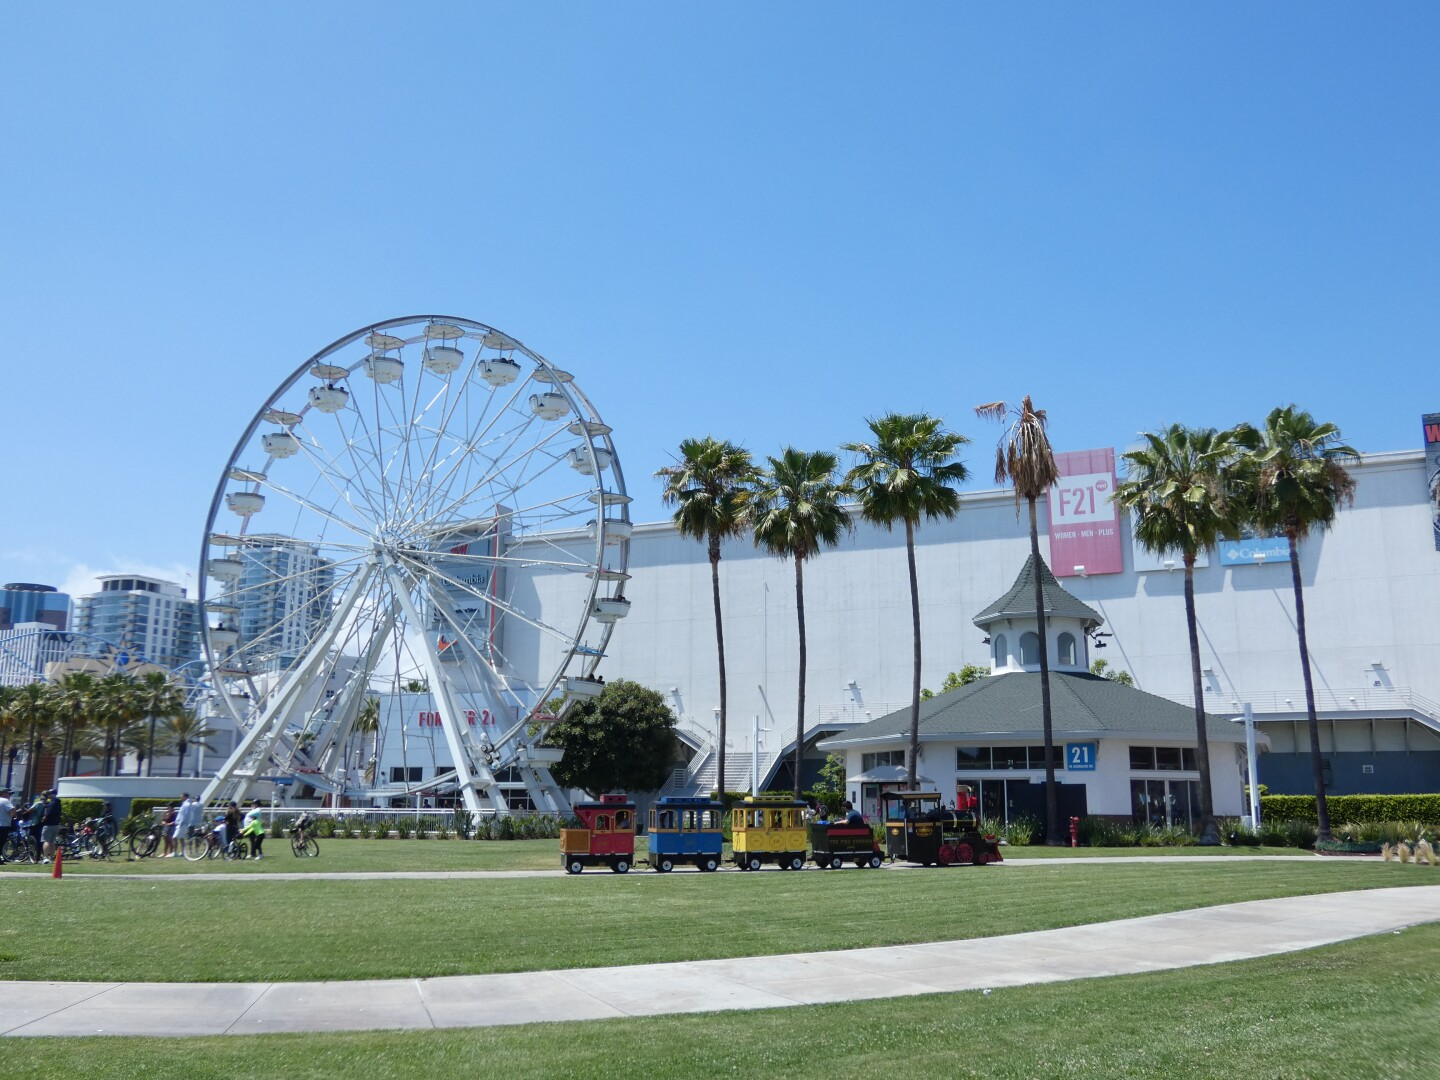 The carousel and ferris wheel at The Pike in Long Beach.